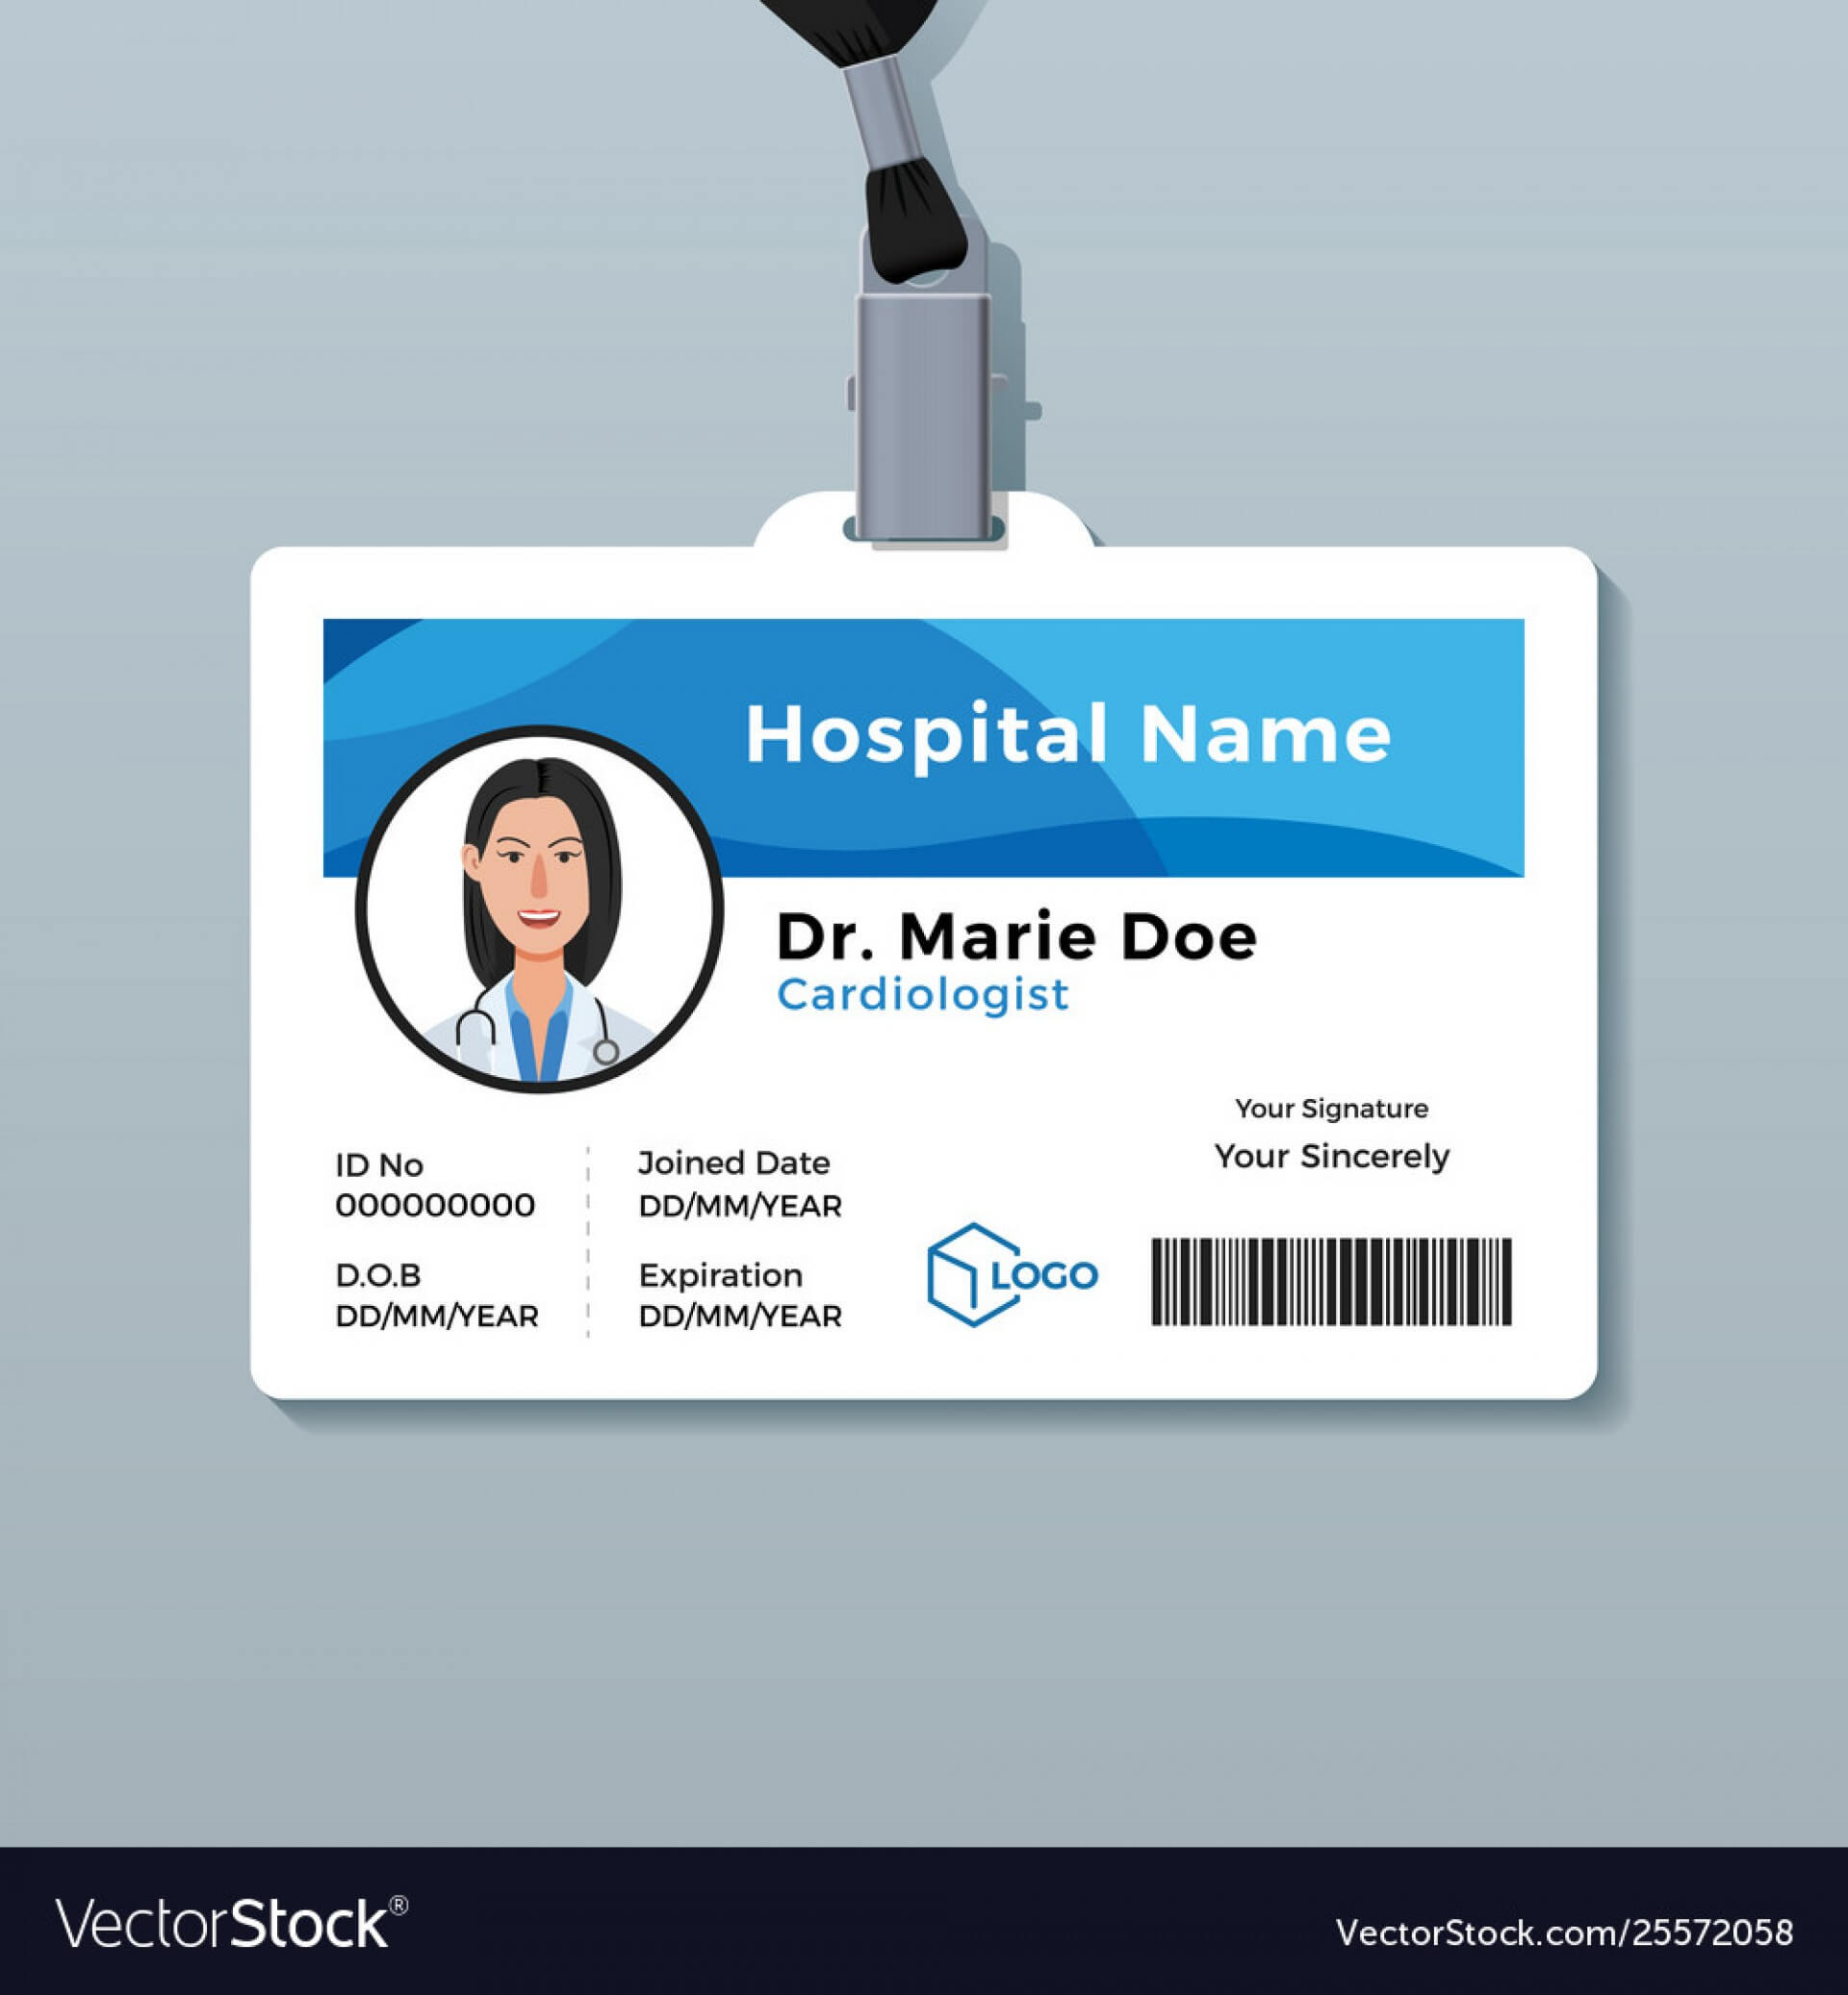 009 Teacher Id Card Photoshop Template Ideas Free Badge Pertaining To Teacher Id Card Template